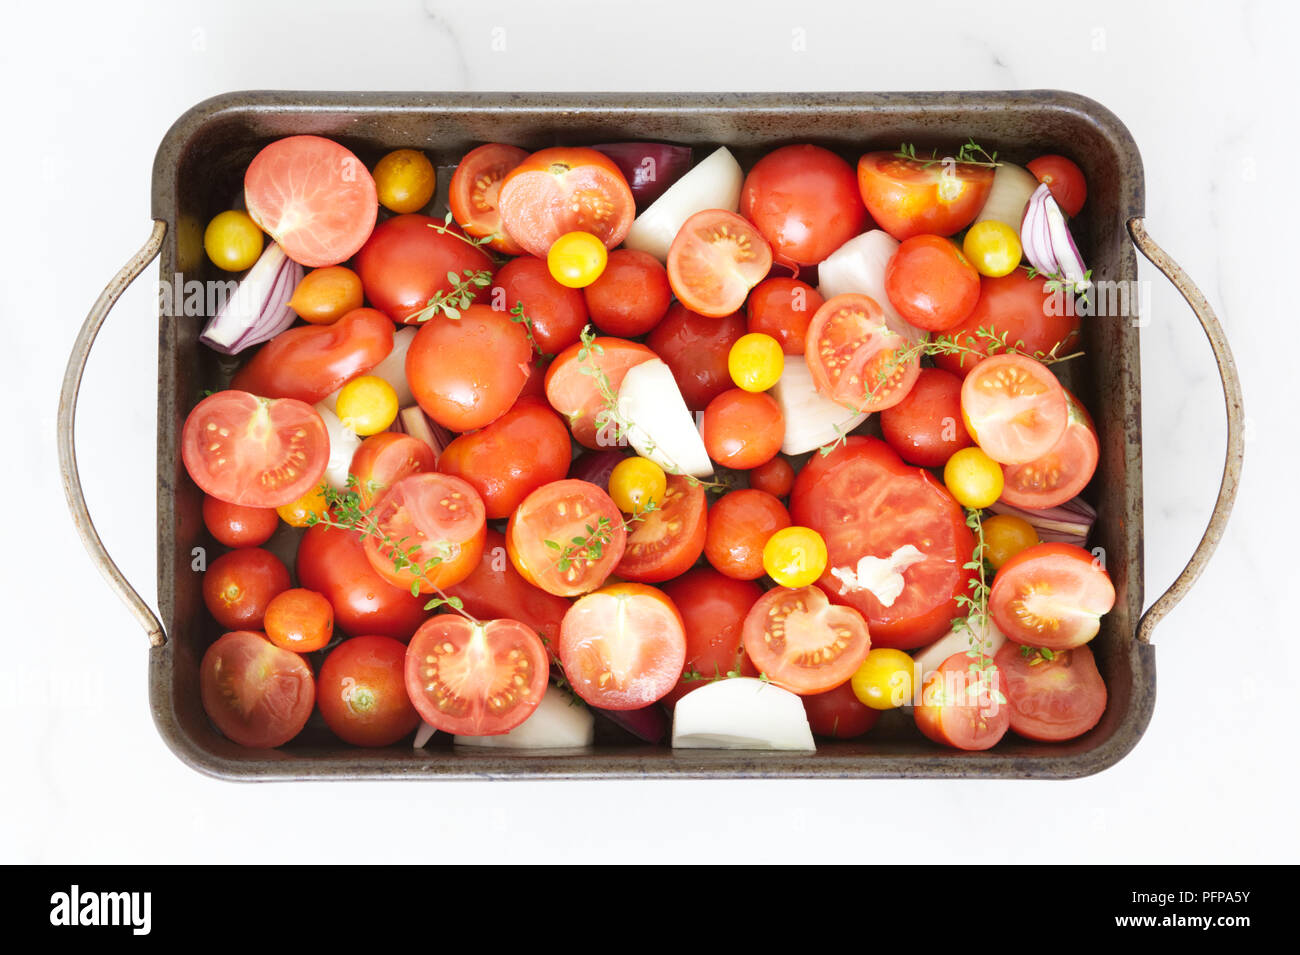 Tomatoes, Onions and Garlic ready for roasting. - Stock Image